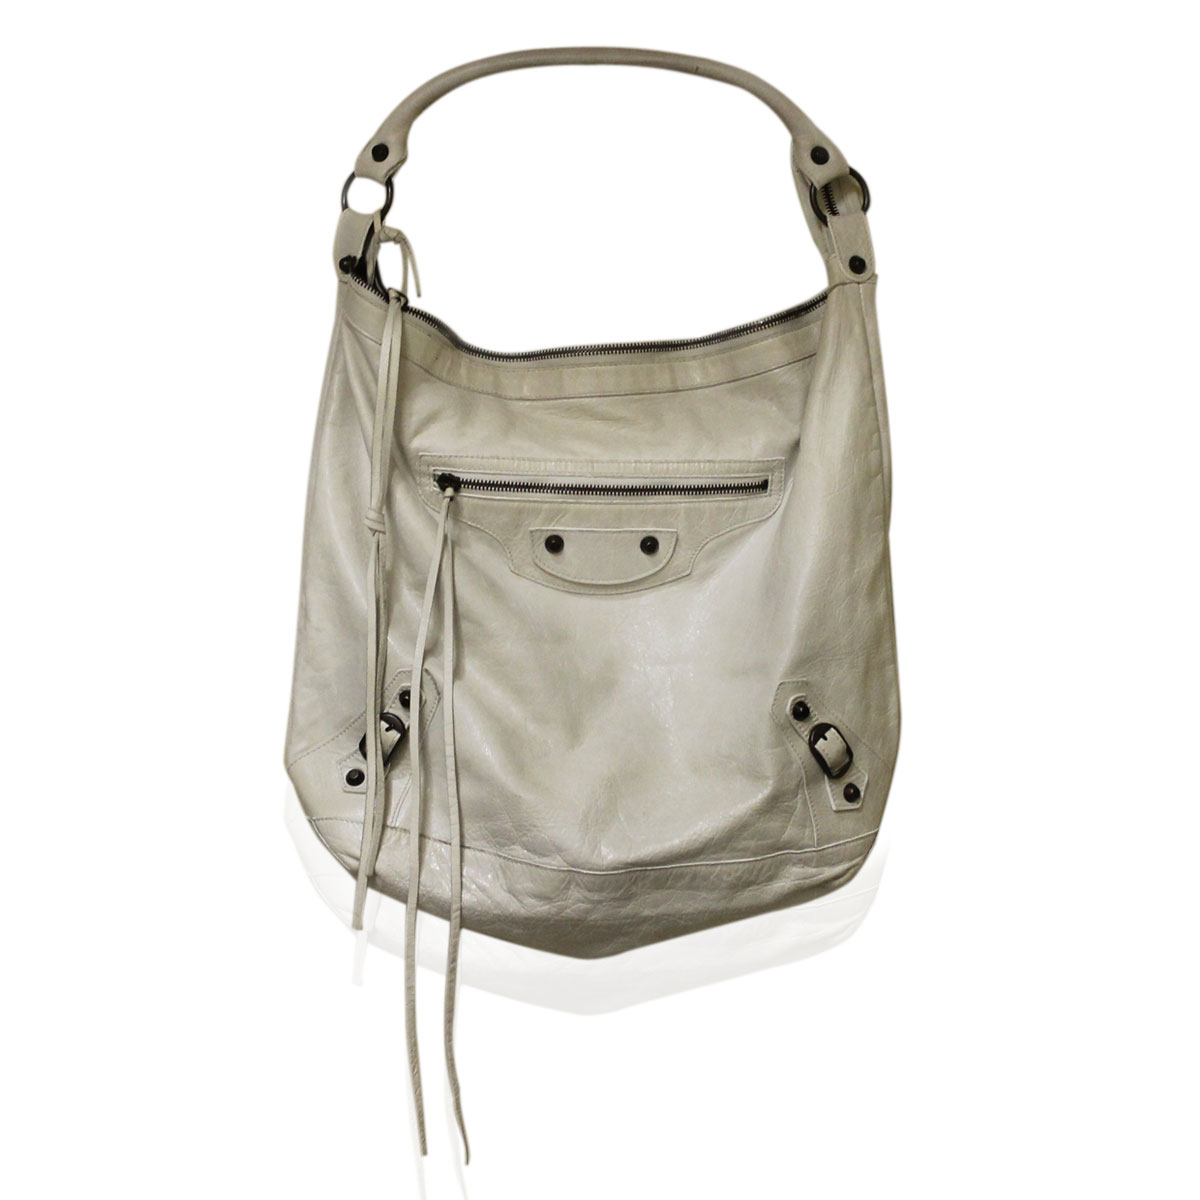 Balenciaga Chevre White Day Hobo Bag 2005